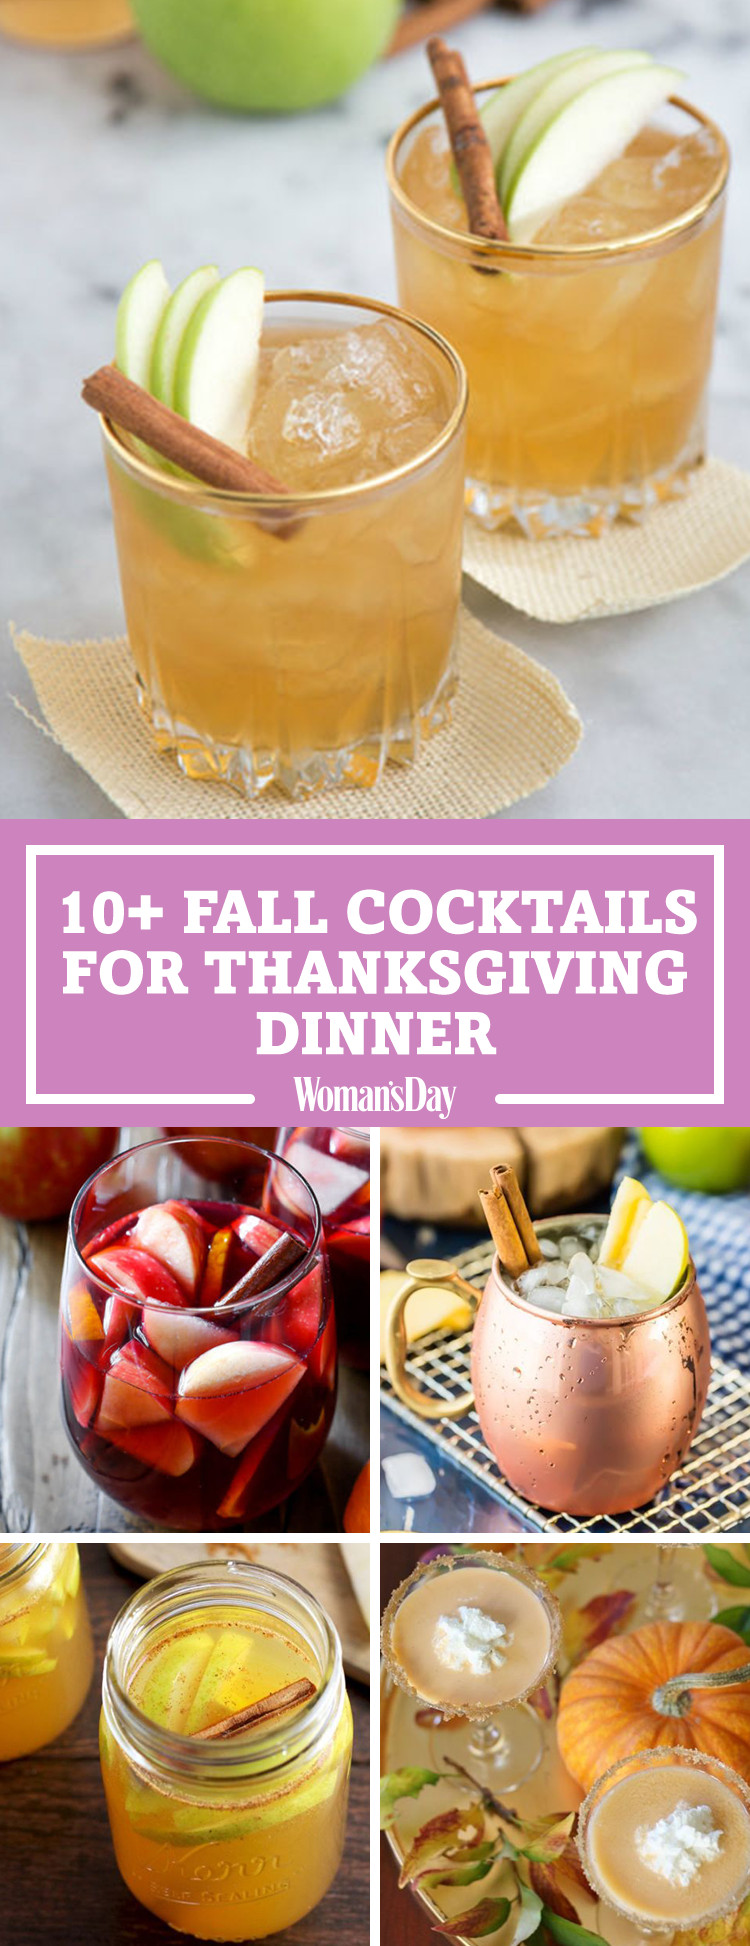 Thanksgiving Drinks Alcoholic  14 Best Fall Cocktails for Thanksgiving Recipes for Easy